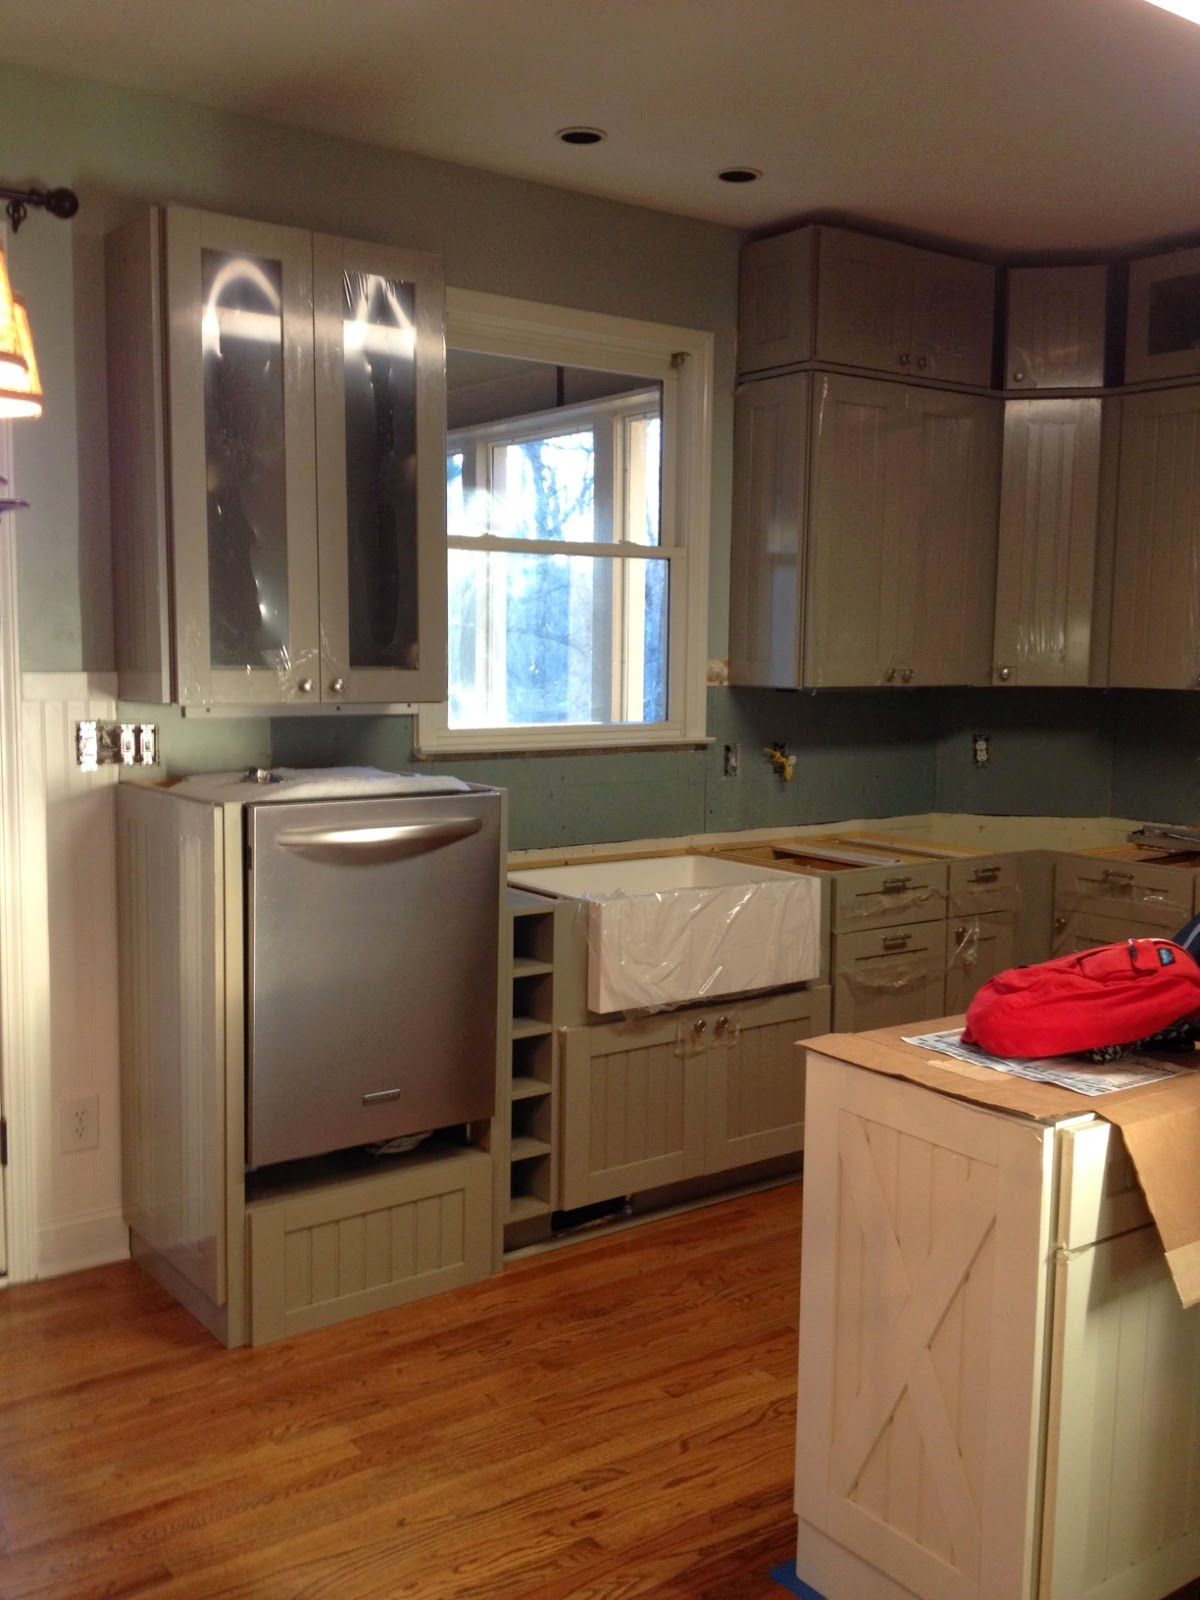 Kitchen Remodel With Martha Stewart Cabinets Kitchen Remodel Small Kitchen Remodel Kitchen Design Small